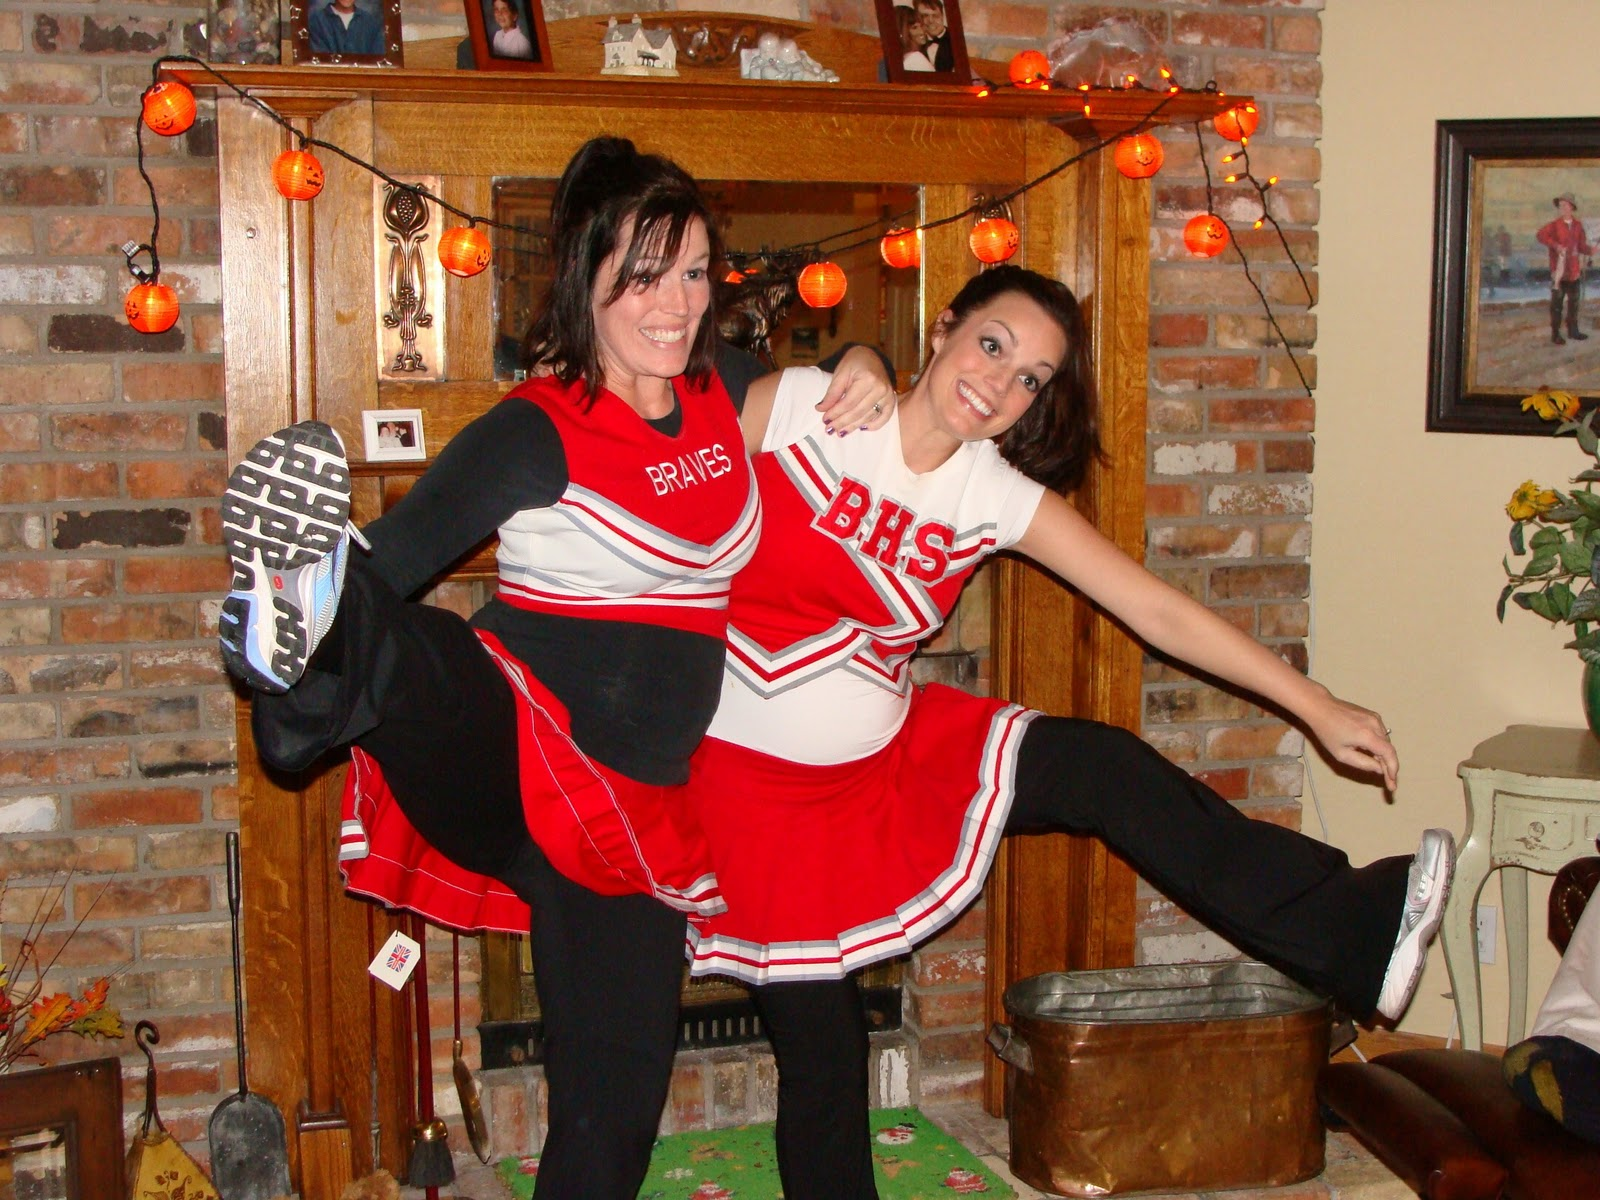 2010 Fall 070 '16 And Pregnant' Premiere: Mackenzie Is The Pregnant Cheerleader